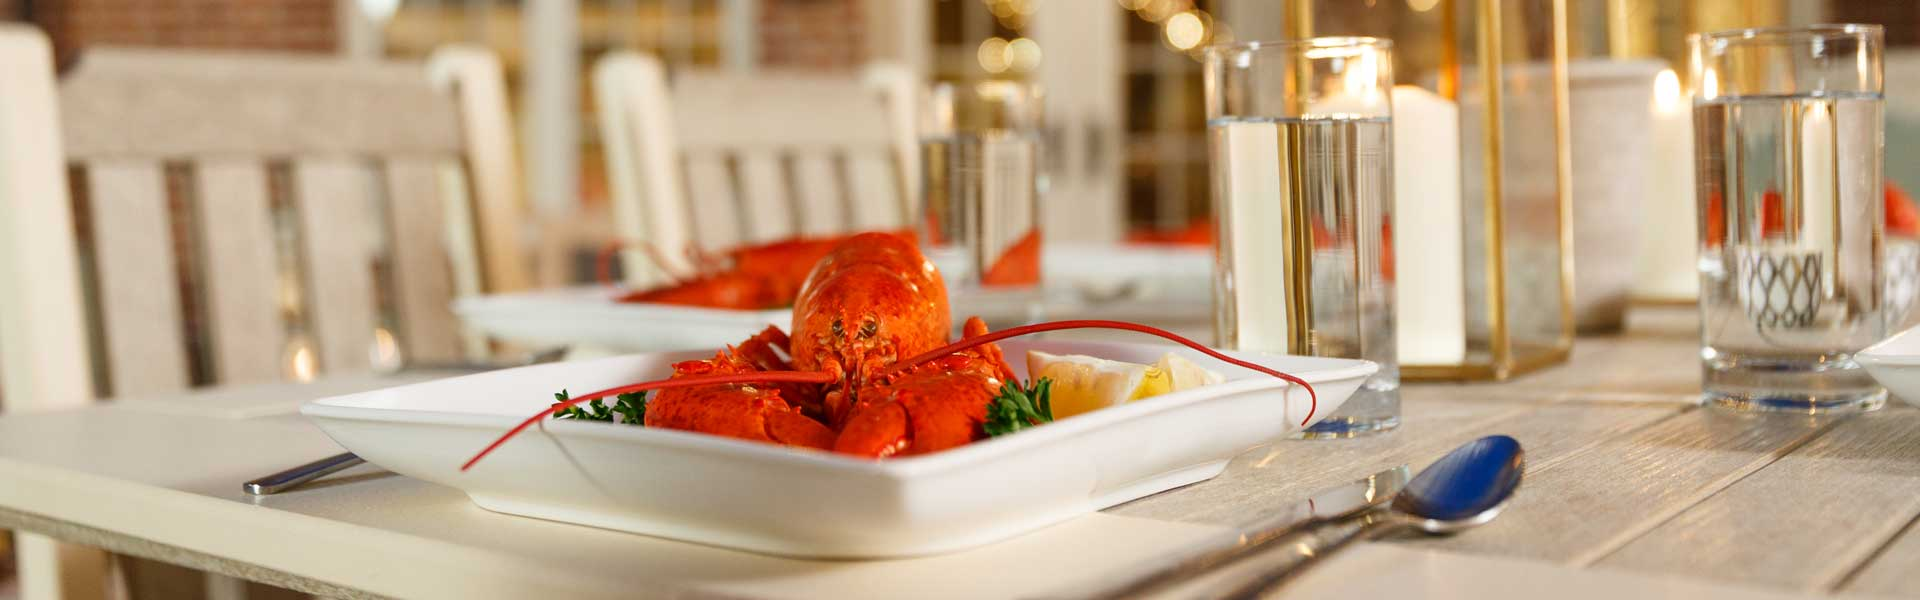 Lobster on plate on poly dining furniture set